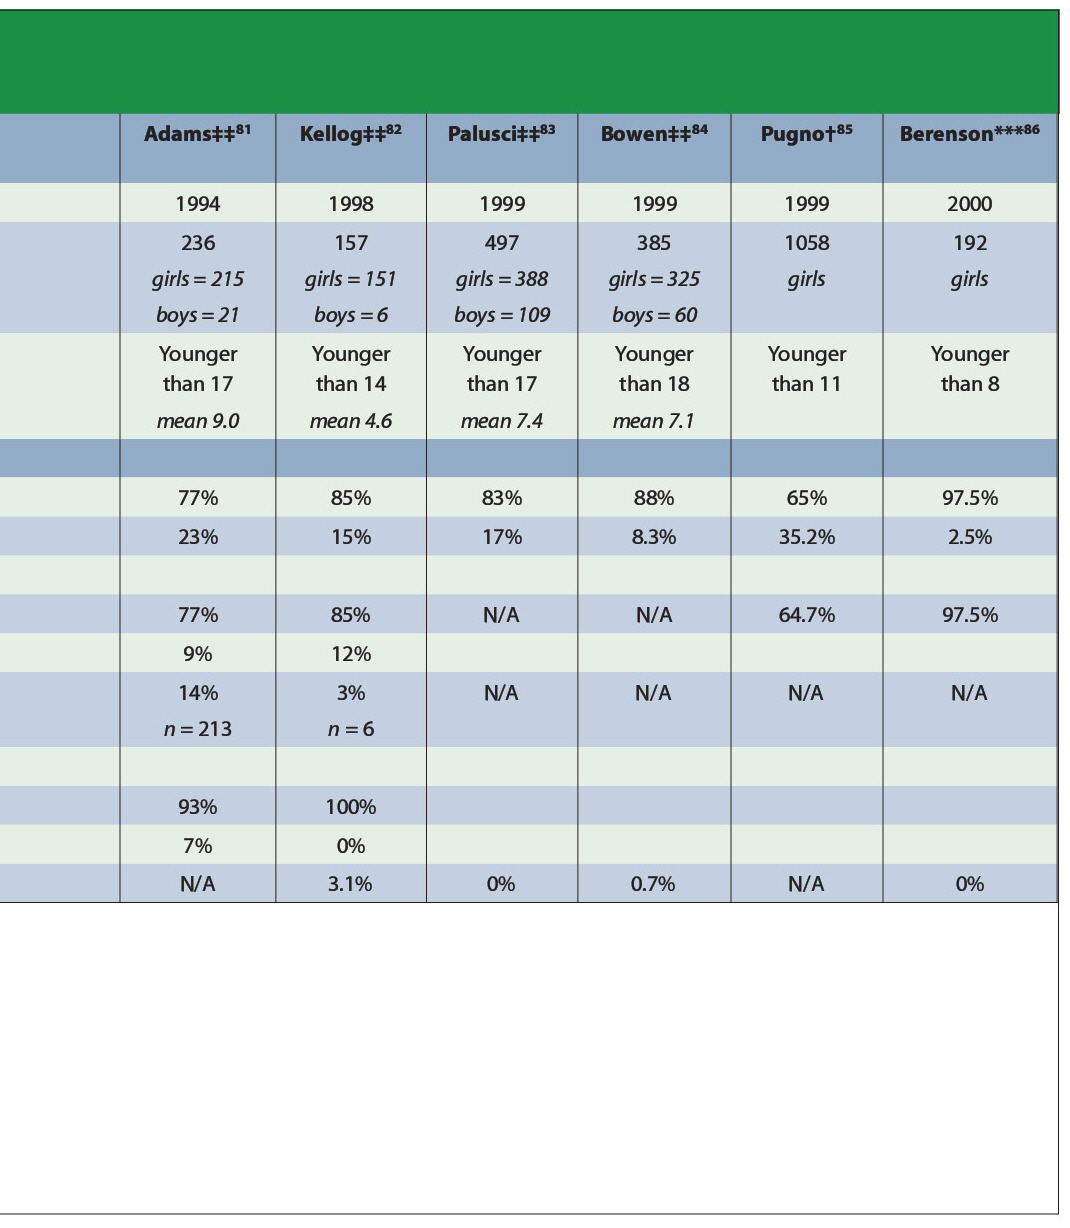 TABLE 1.Comparison of Abnormal Genital Findings in Children Referred for Possible Sexual Abuse